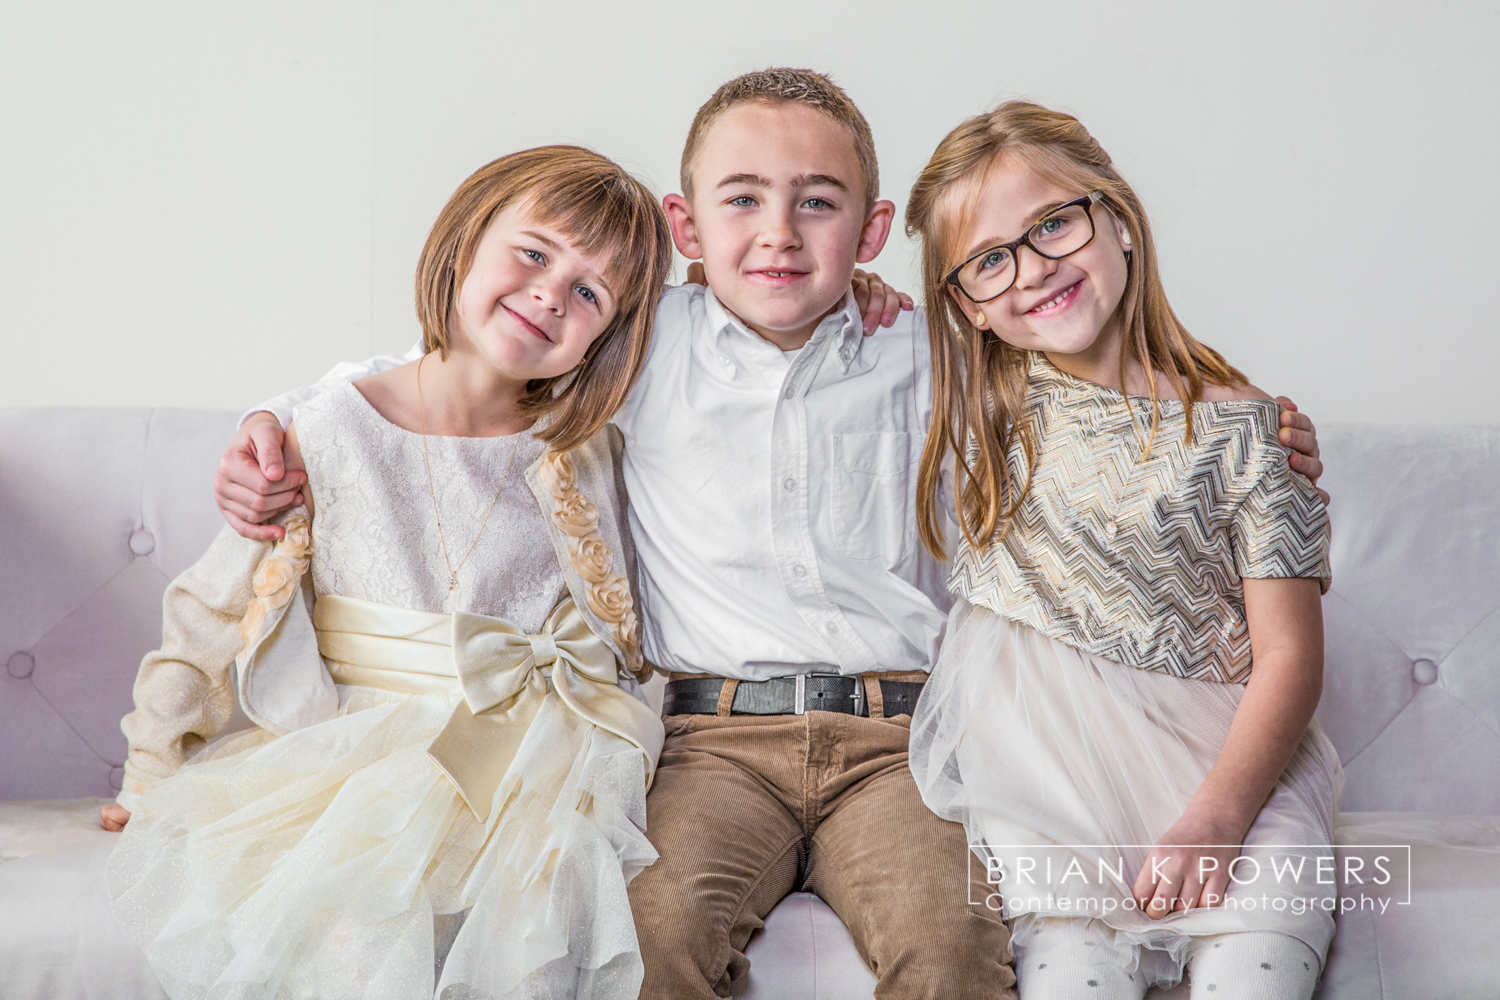 Portrait-Website McBride-Family_portrait_with_children-004.jpg